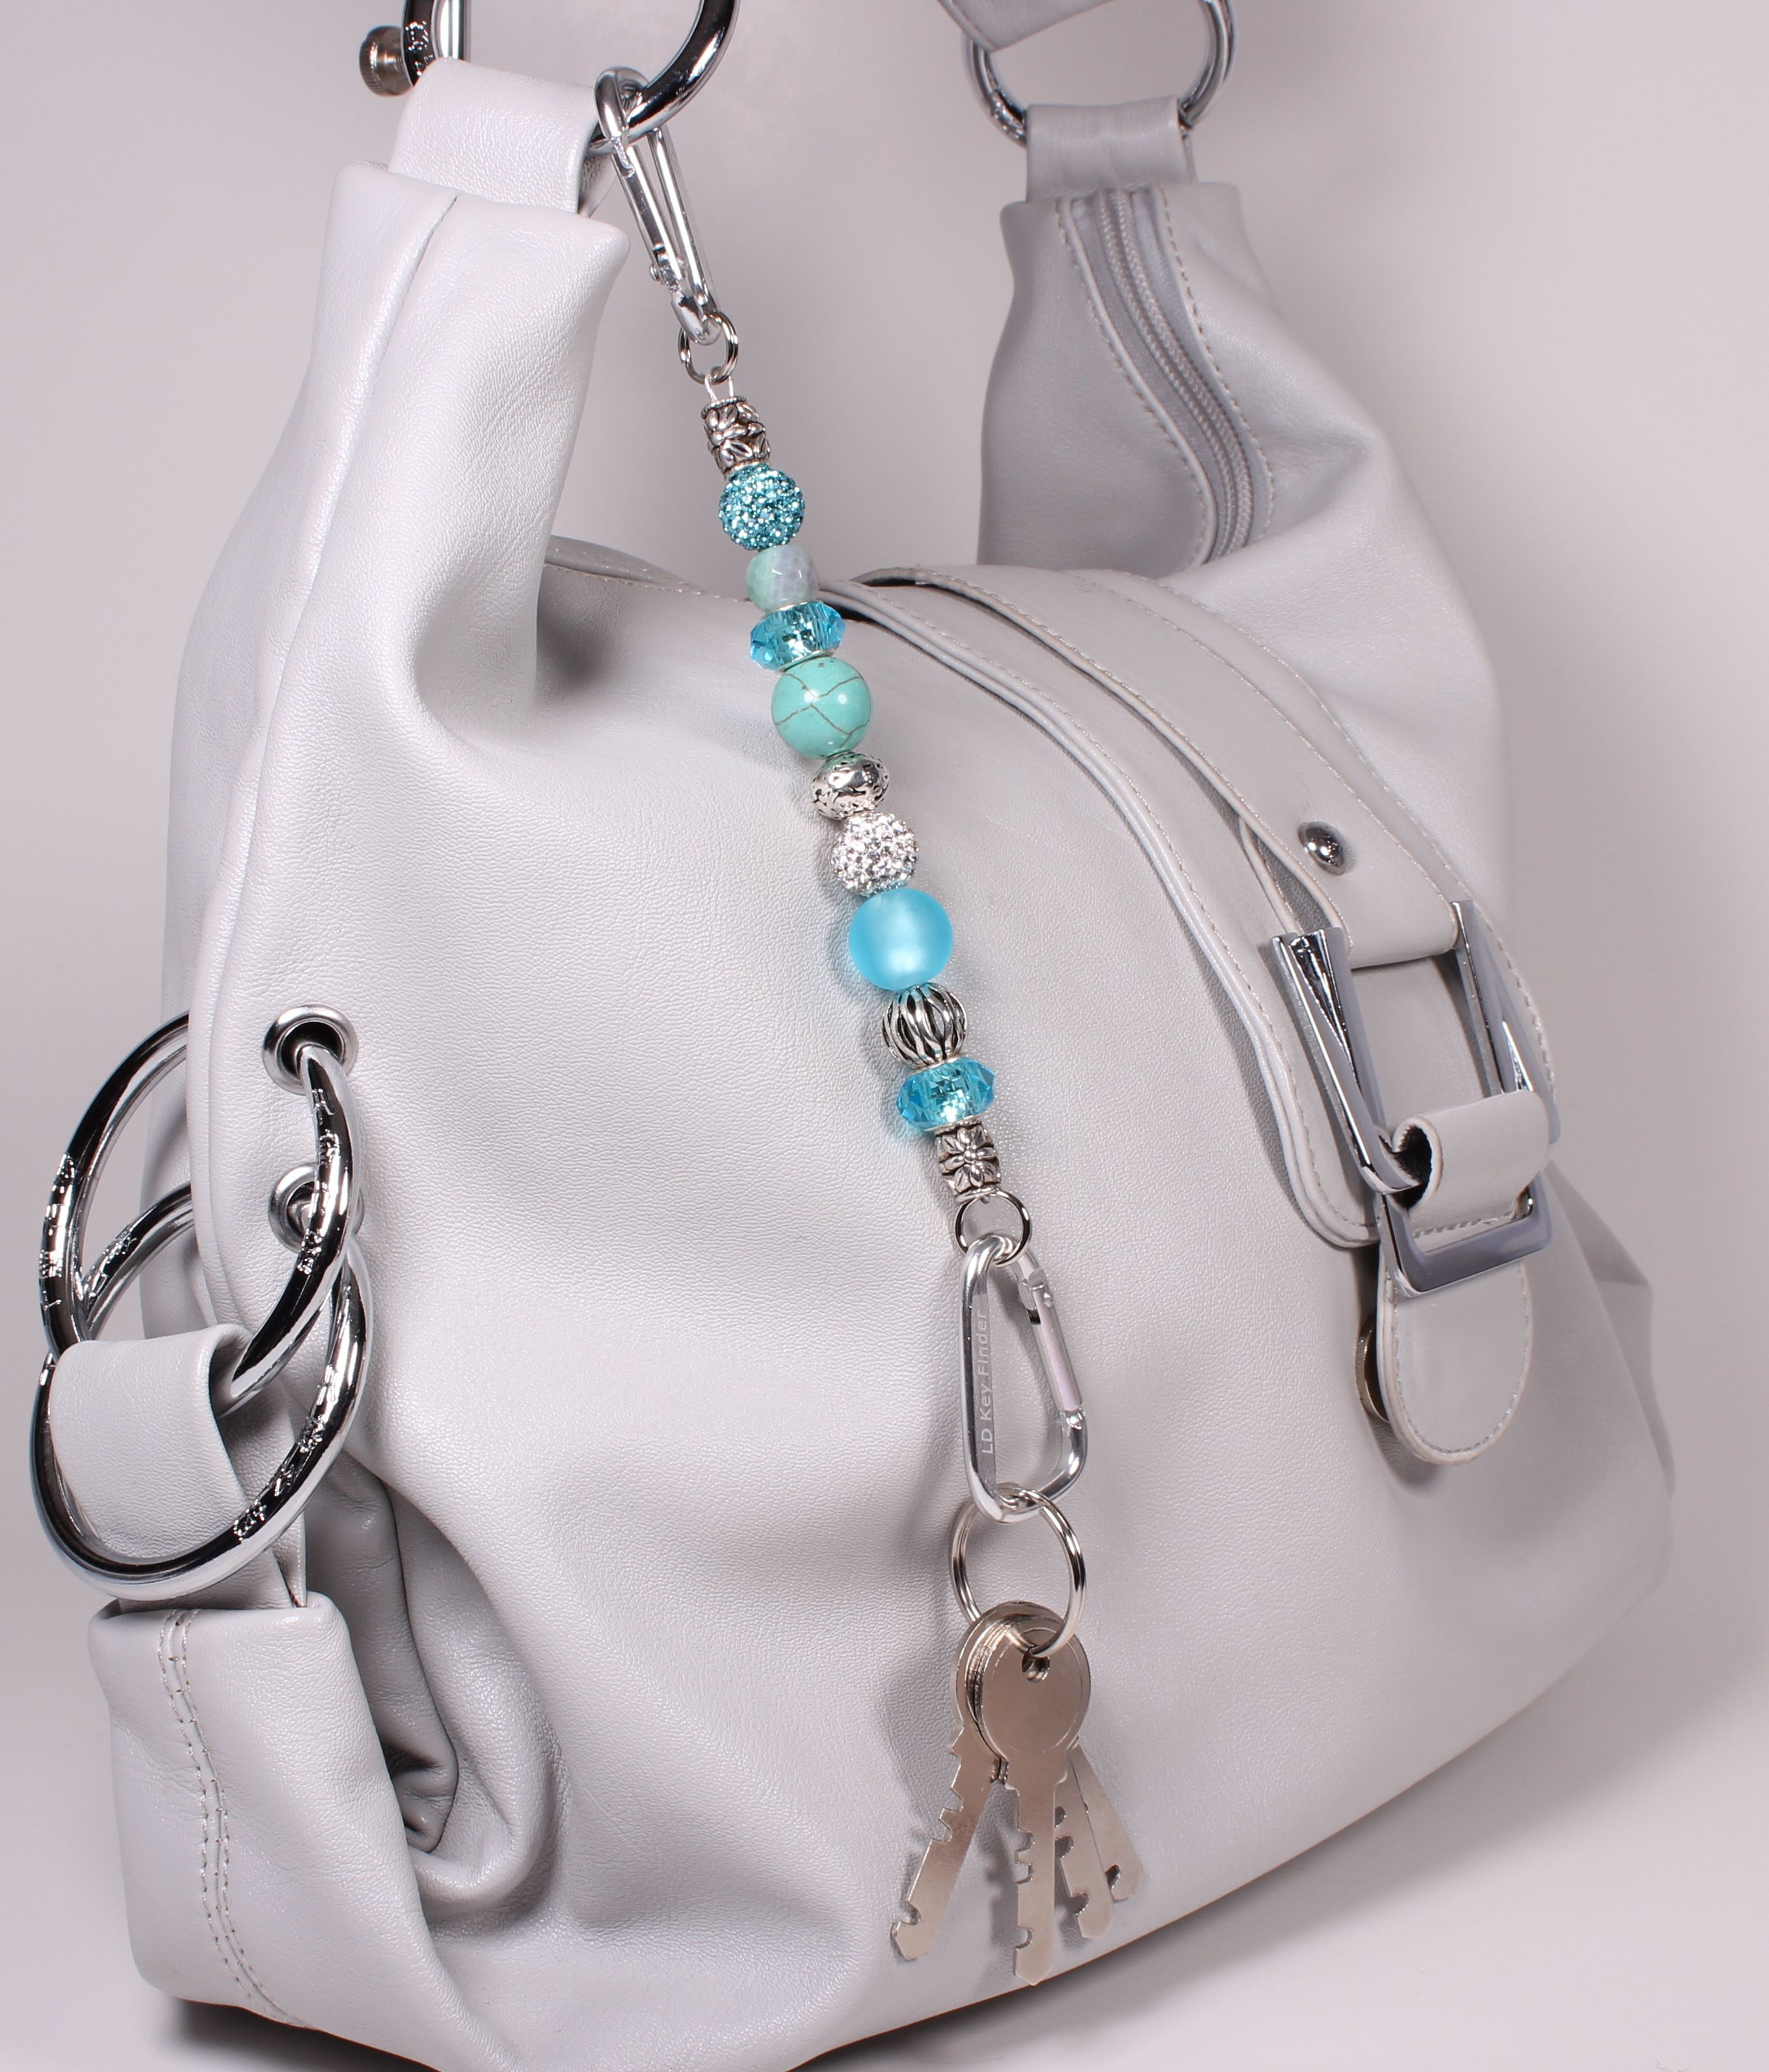 Clip Your Keys And Stop Digging In Purse The Ld Key Finder Makes Finding Easy Elegant